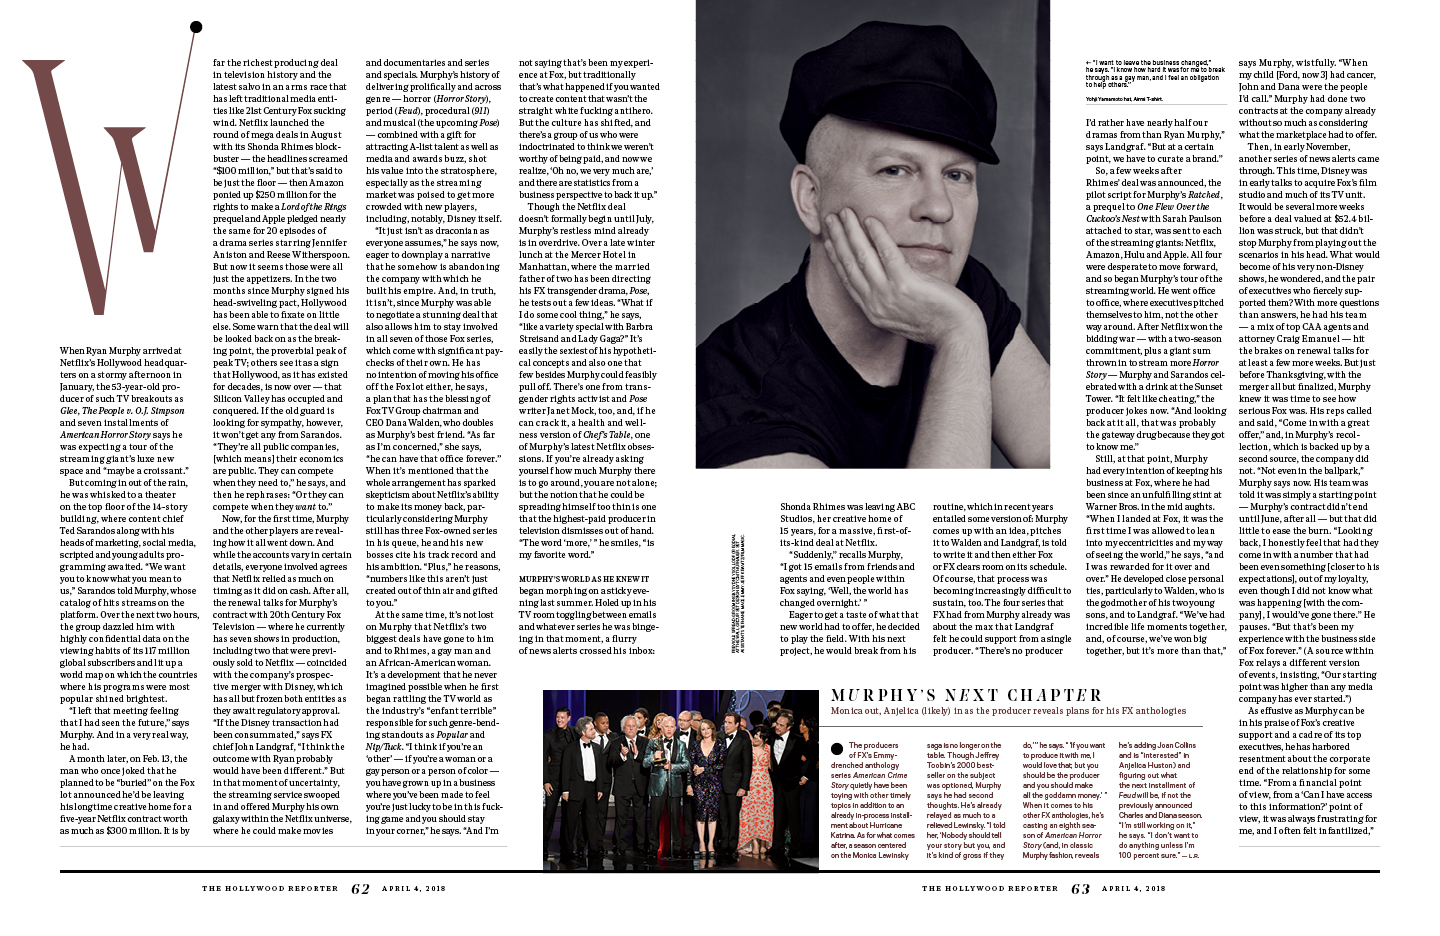 Ryan Murphy / The Hollywood Reporter / 4.4.18 / kelsey stefanson / art direction + graphic design / yeskelsey.com